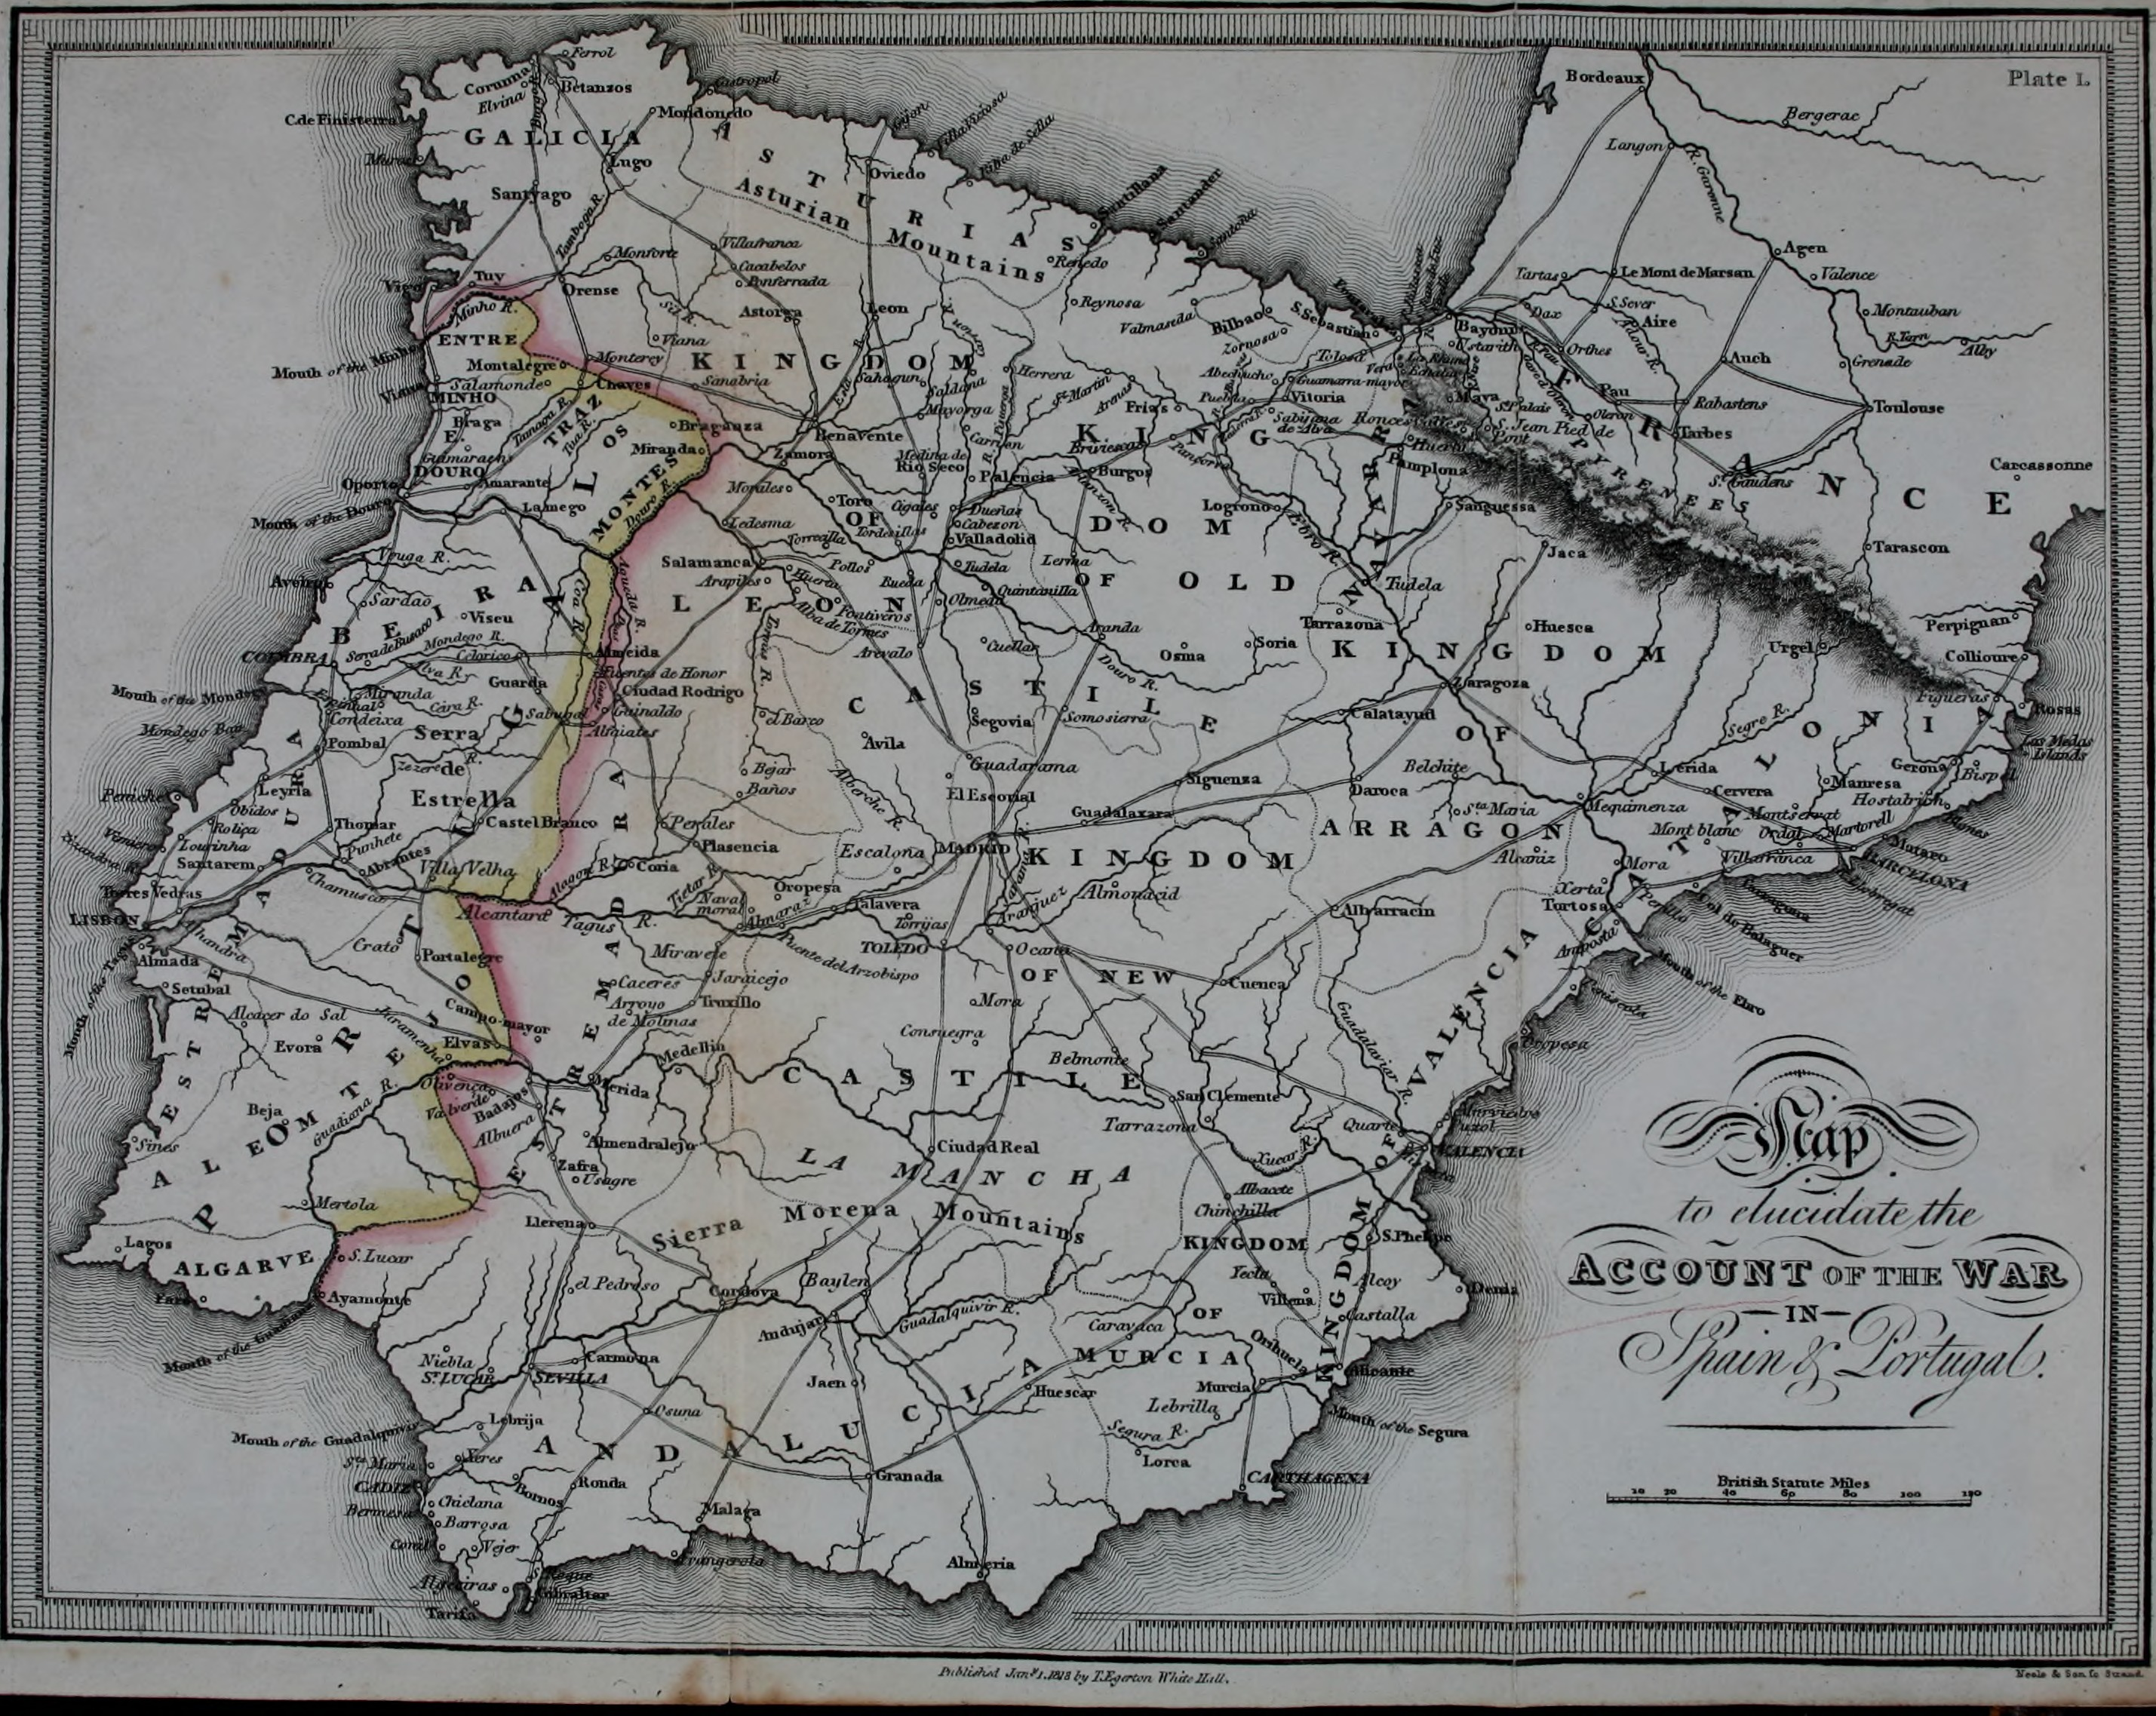 Map Of Southern Spain And Portugal.File Account Of The War In Spain And Portugal And In The South Of